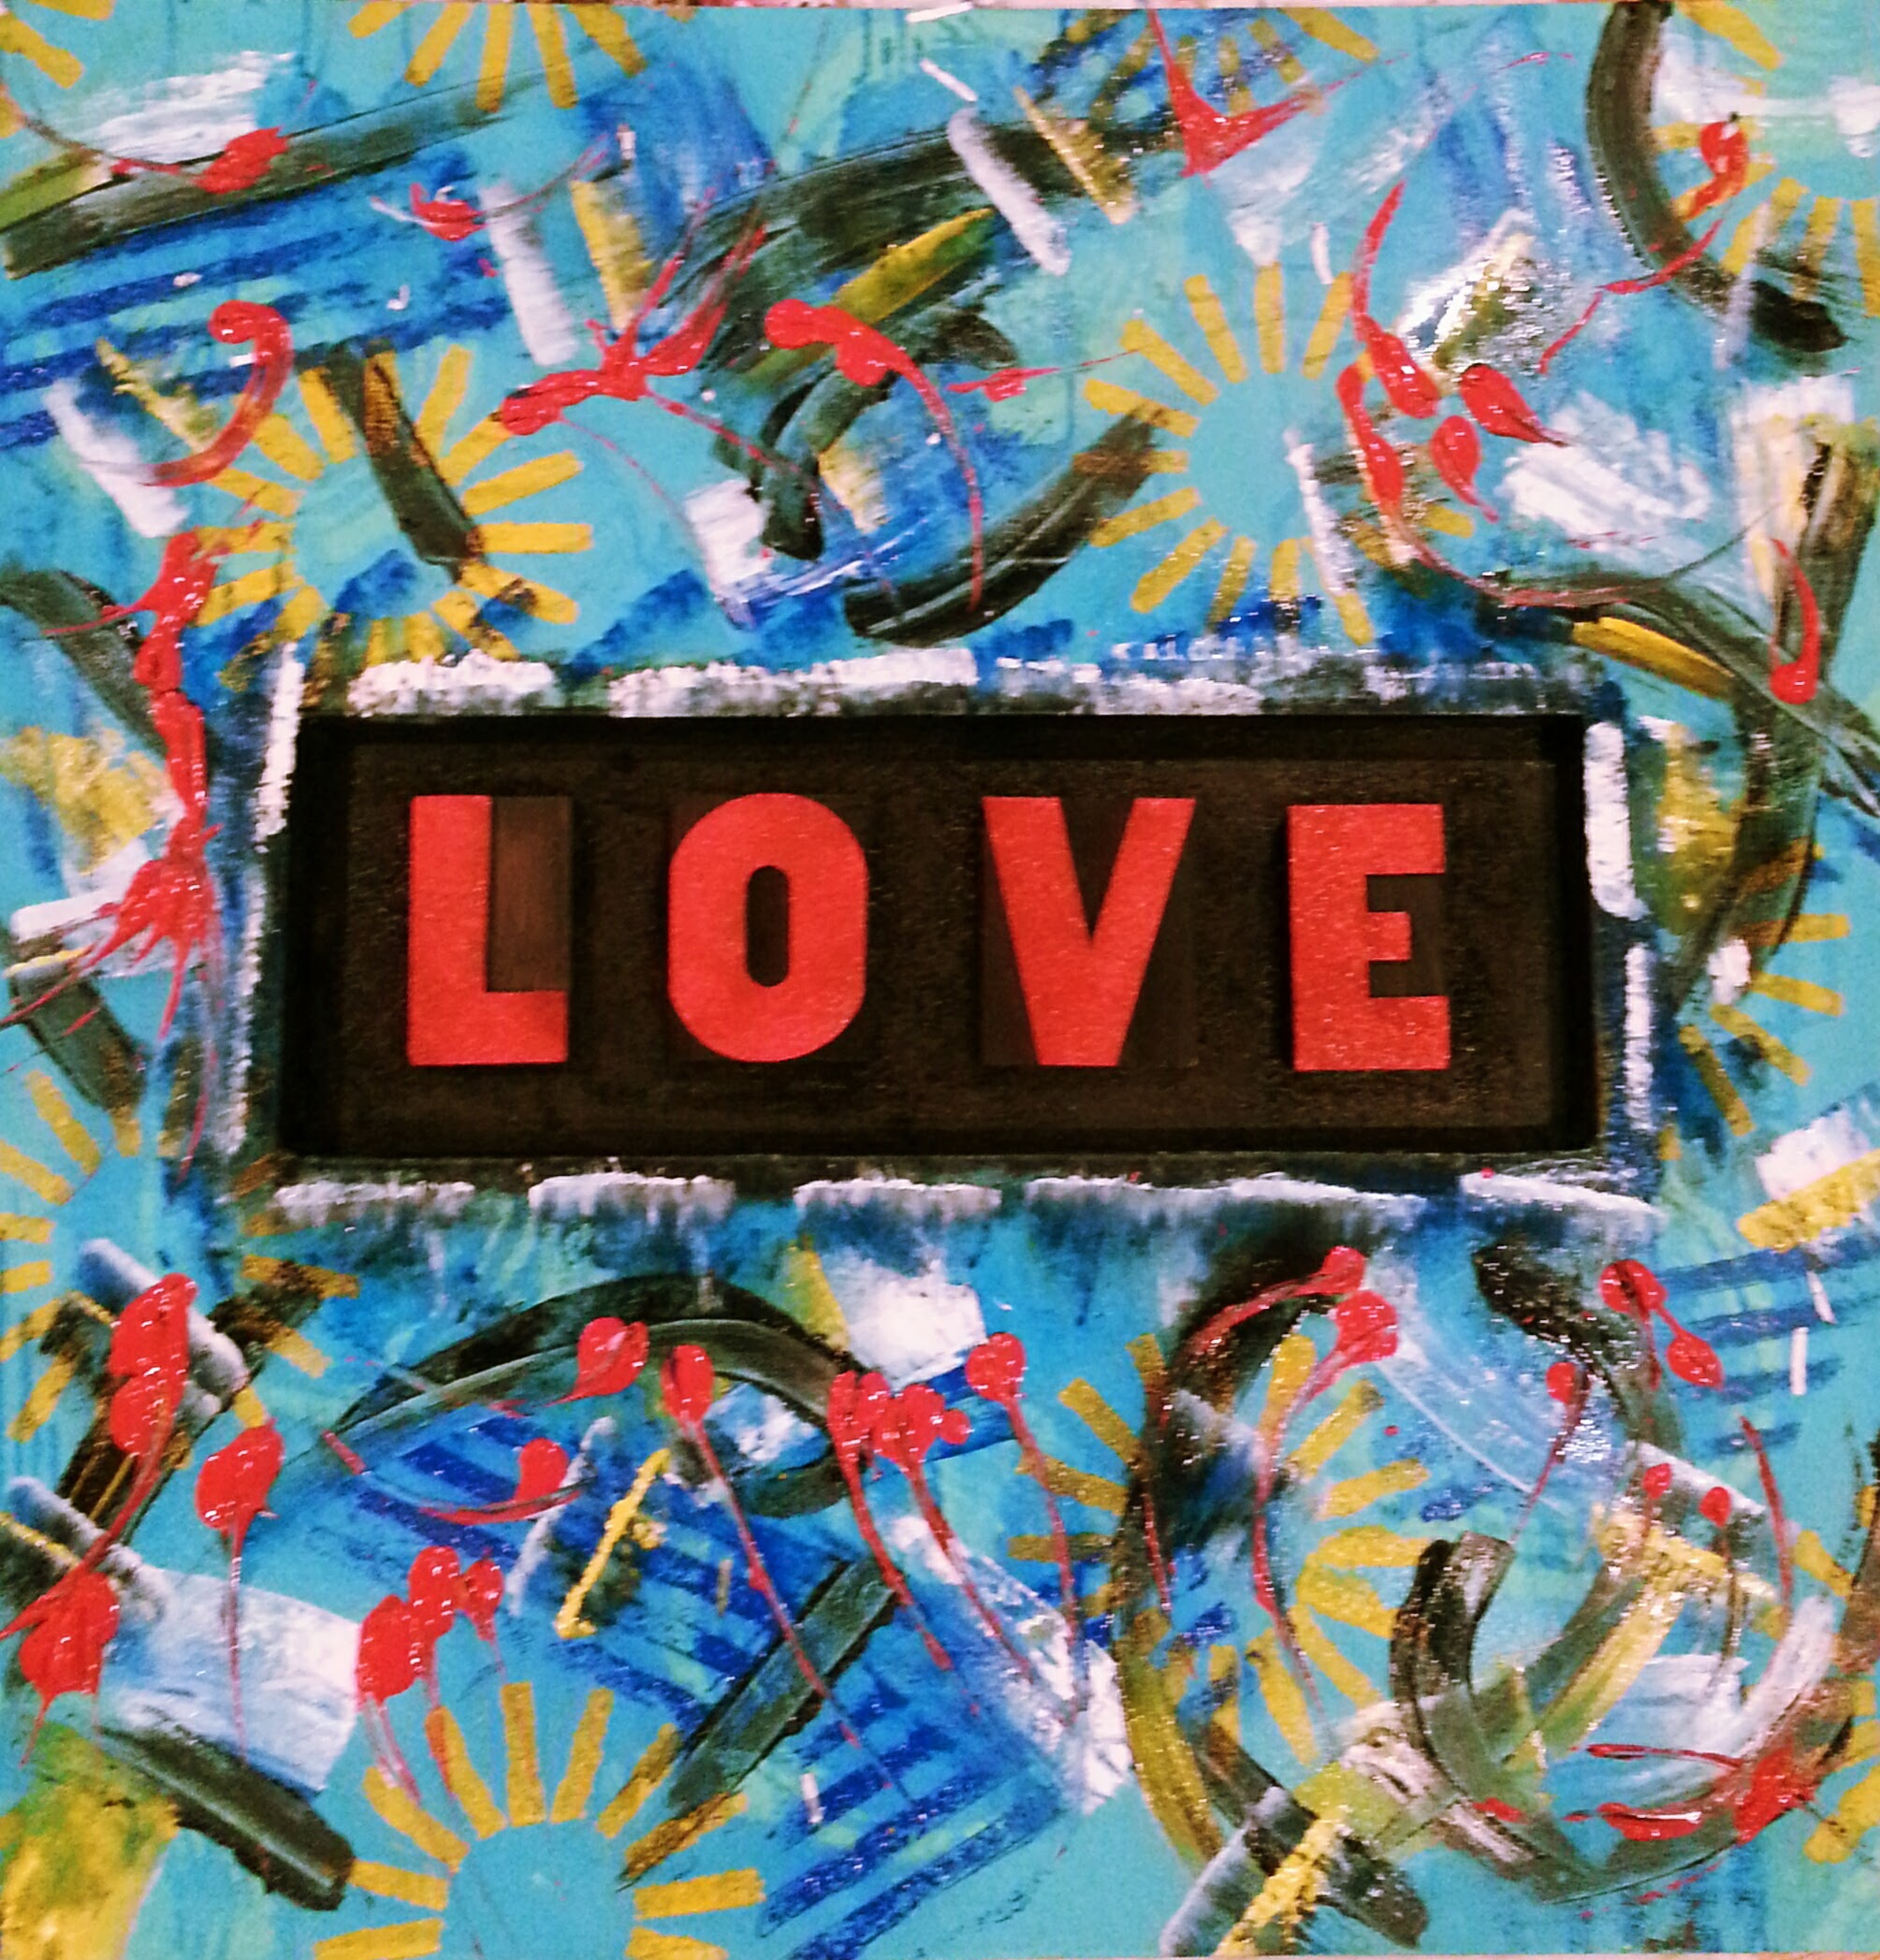 graphic art, christine's mod art. colorful, red, green, black, art, contemporary, abstract, urbanart, modern, love